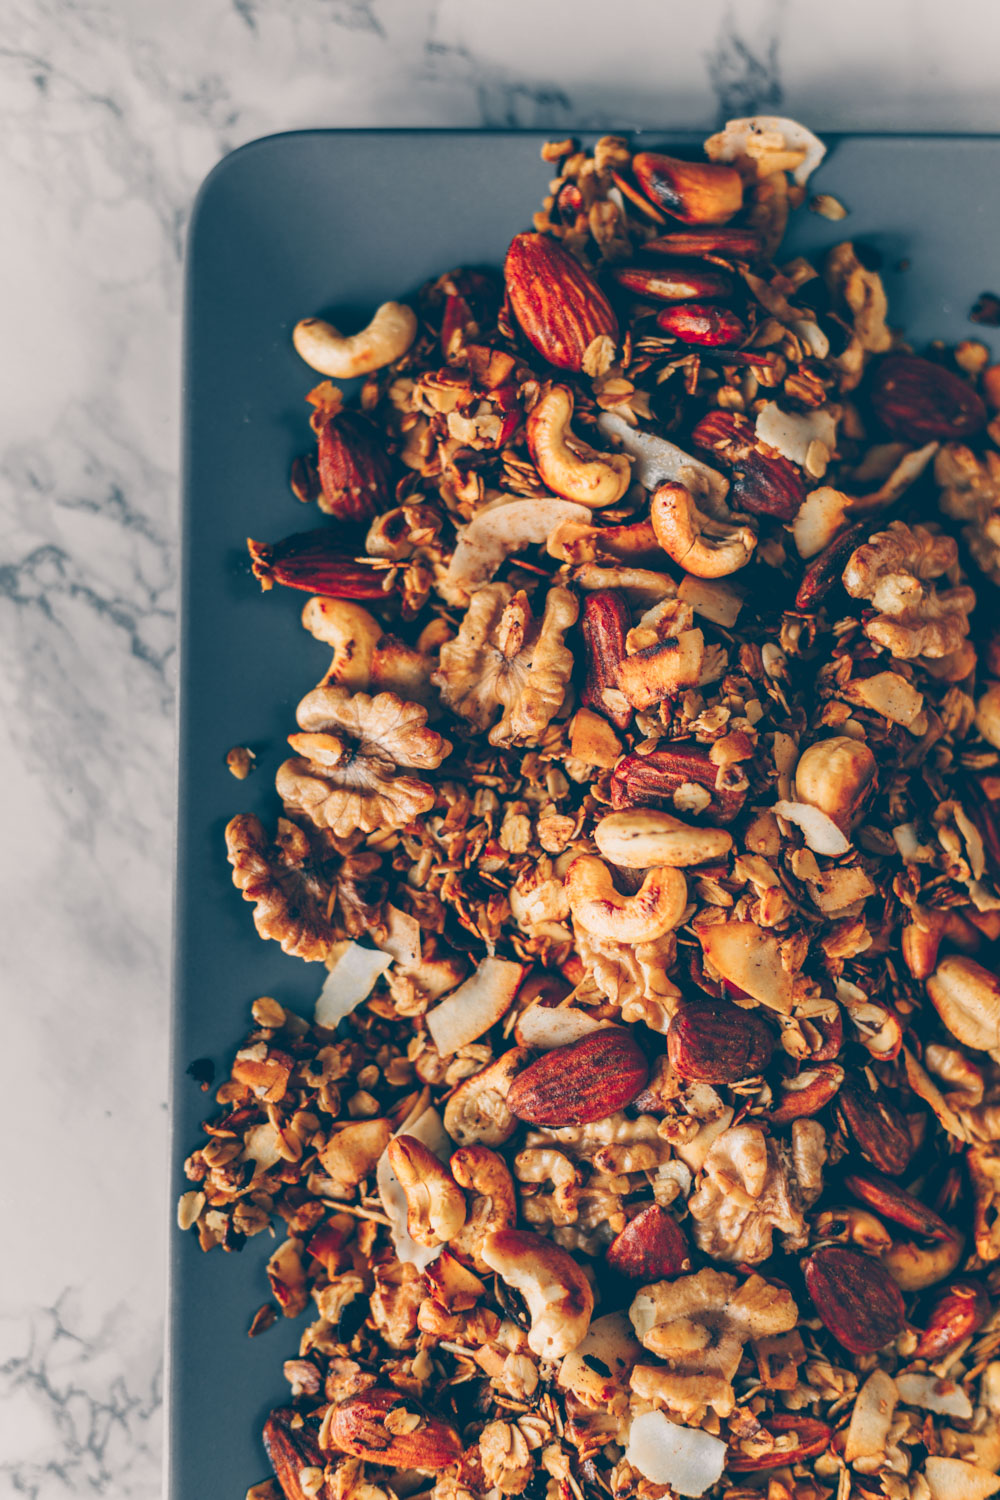 Stovetop Nut Coconut Granola (vegan & gluten-free) by Kati of black.white.vivid.